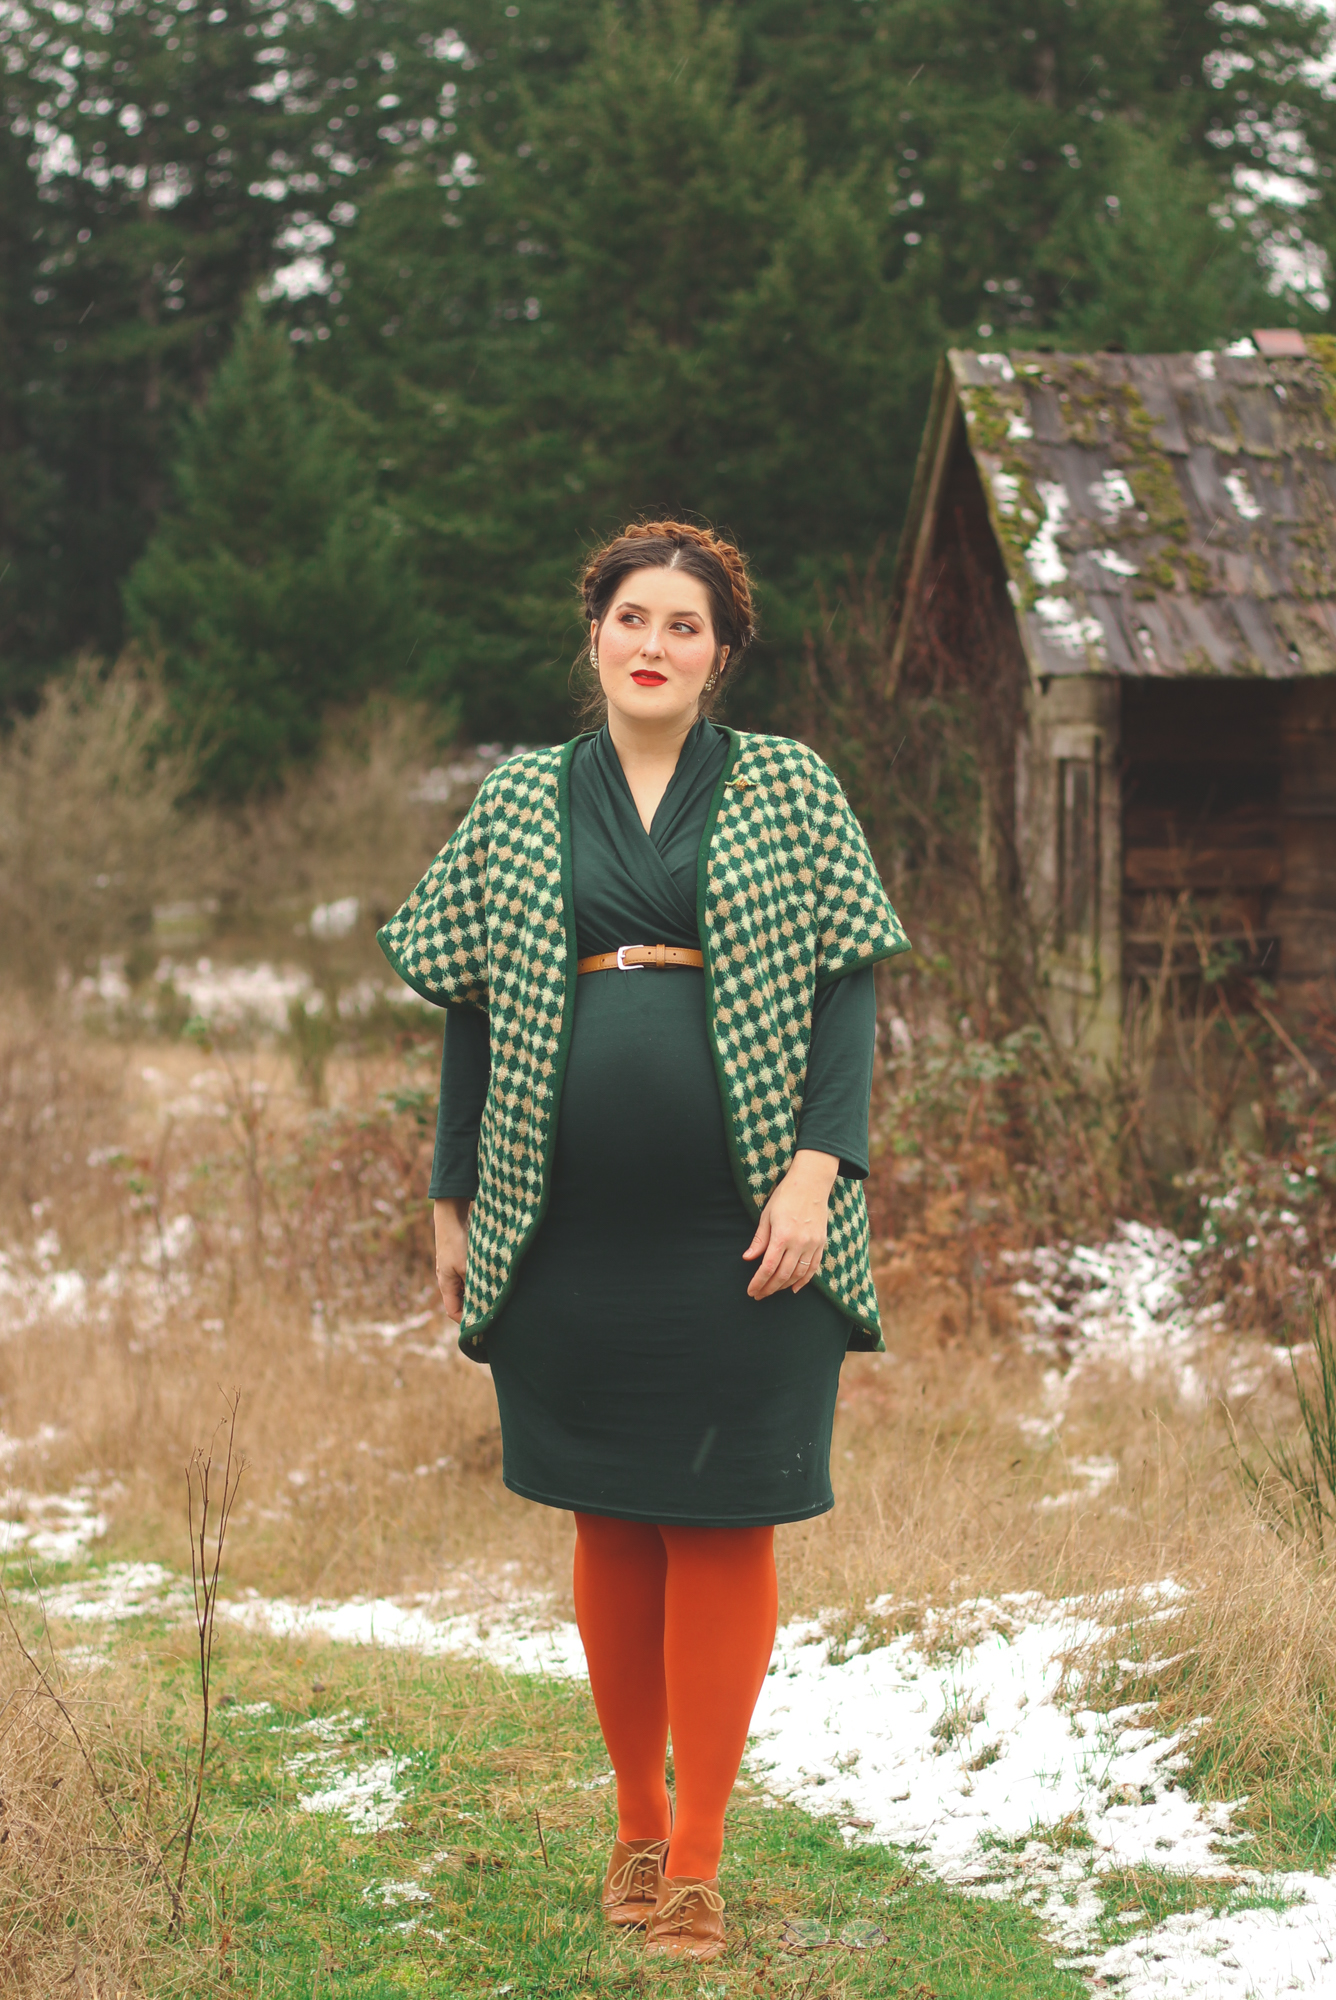 woman wearing green plaid in a snowy field